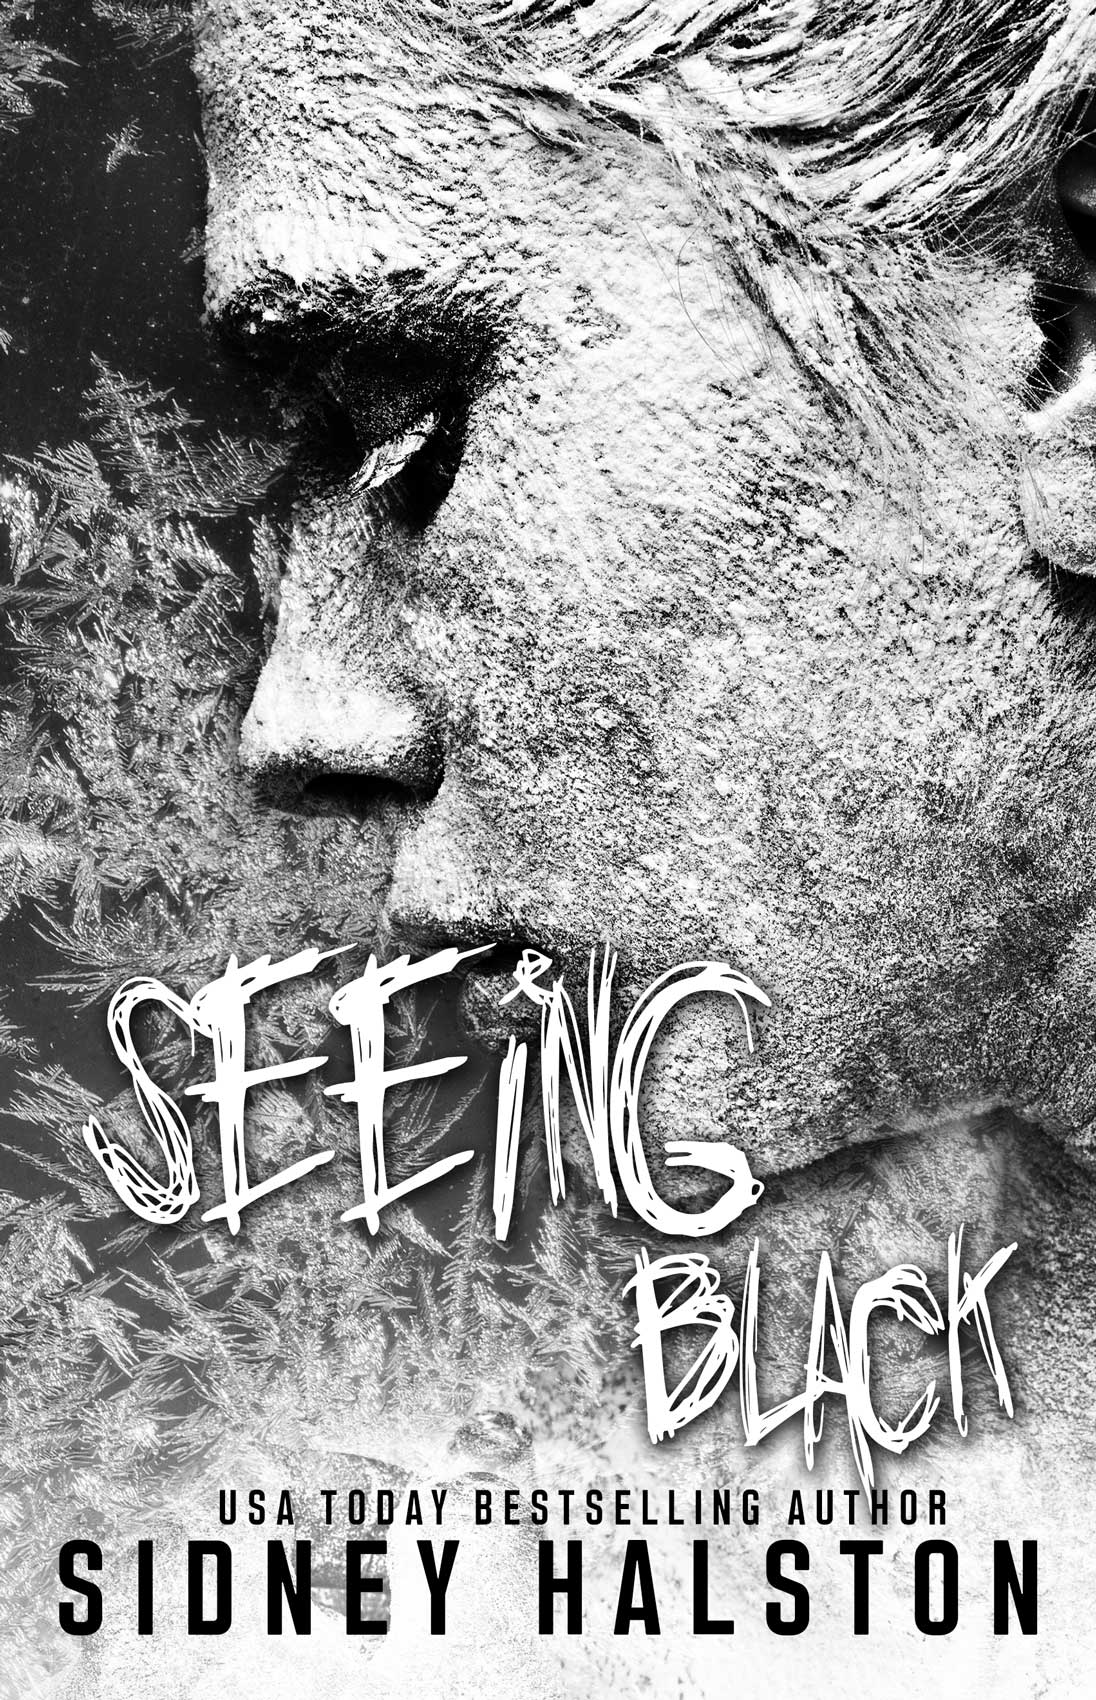 Seeing Black, the conclusion of Seeing Red, continues right where Jillian left off. The love 'square' has been resolved, and Jill is finally getting her happily ever after. Just as things are steaming up with her and her beau, her estranged father makes a request that sets her life spiraling out of control into an endless plunge down the rabbit hole.What will happen when Paul Black, her deceitful ex-boyfriend, reappears into her life to shed new light on her father? Could she ever trust him?   And will Alexander stick by her during the explosive blowup with her father. -